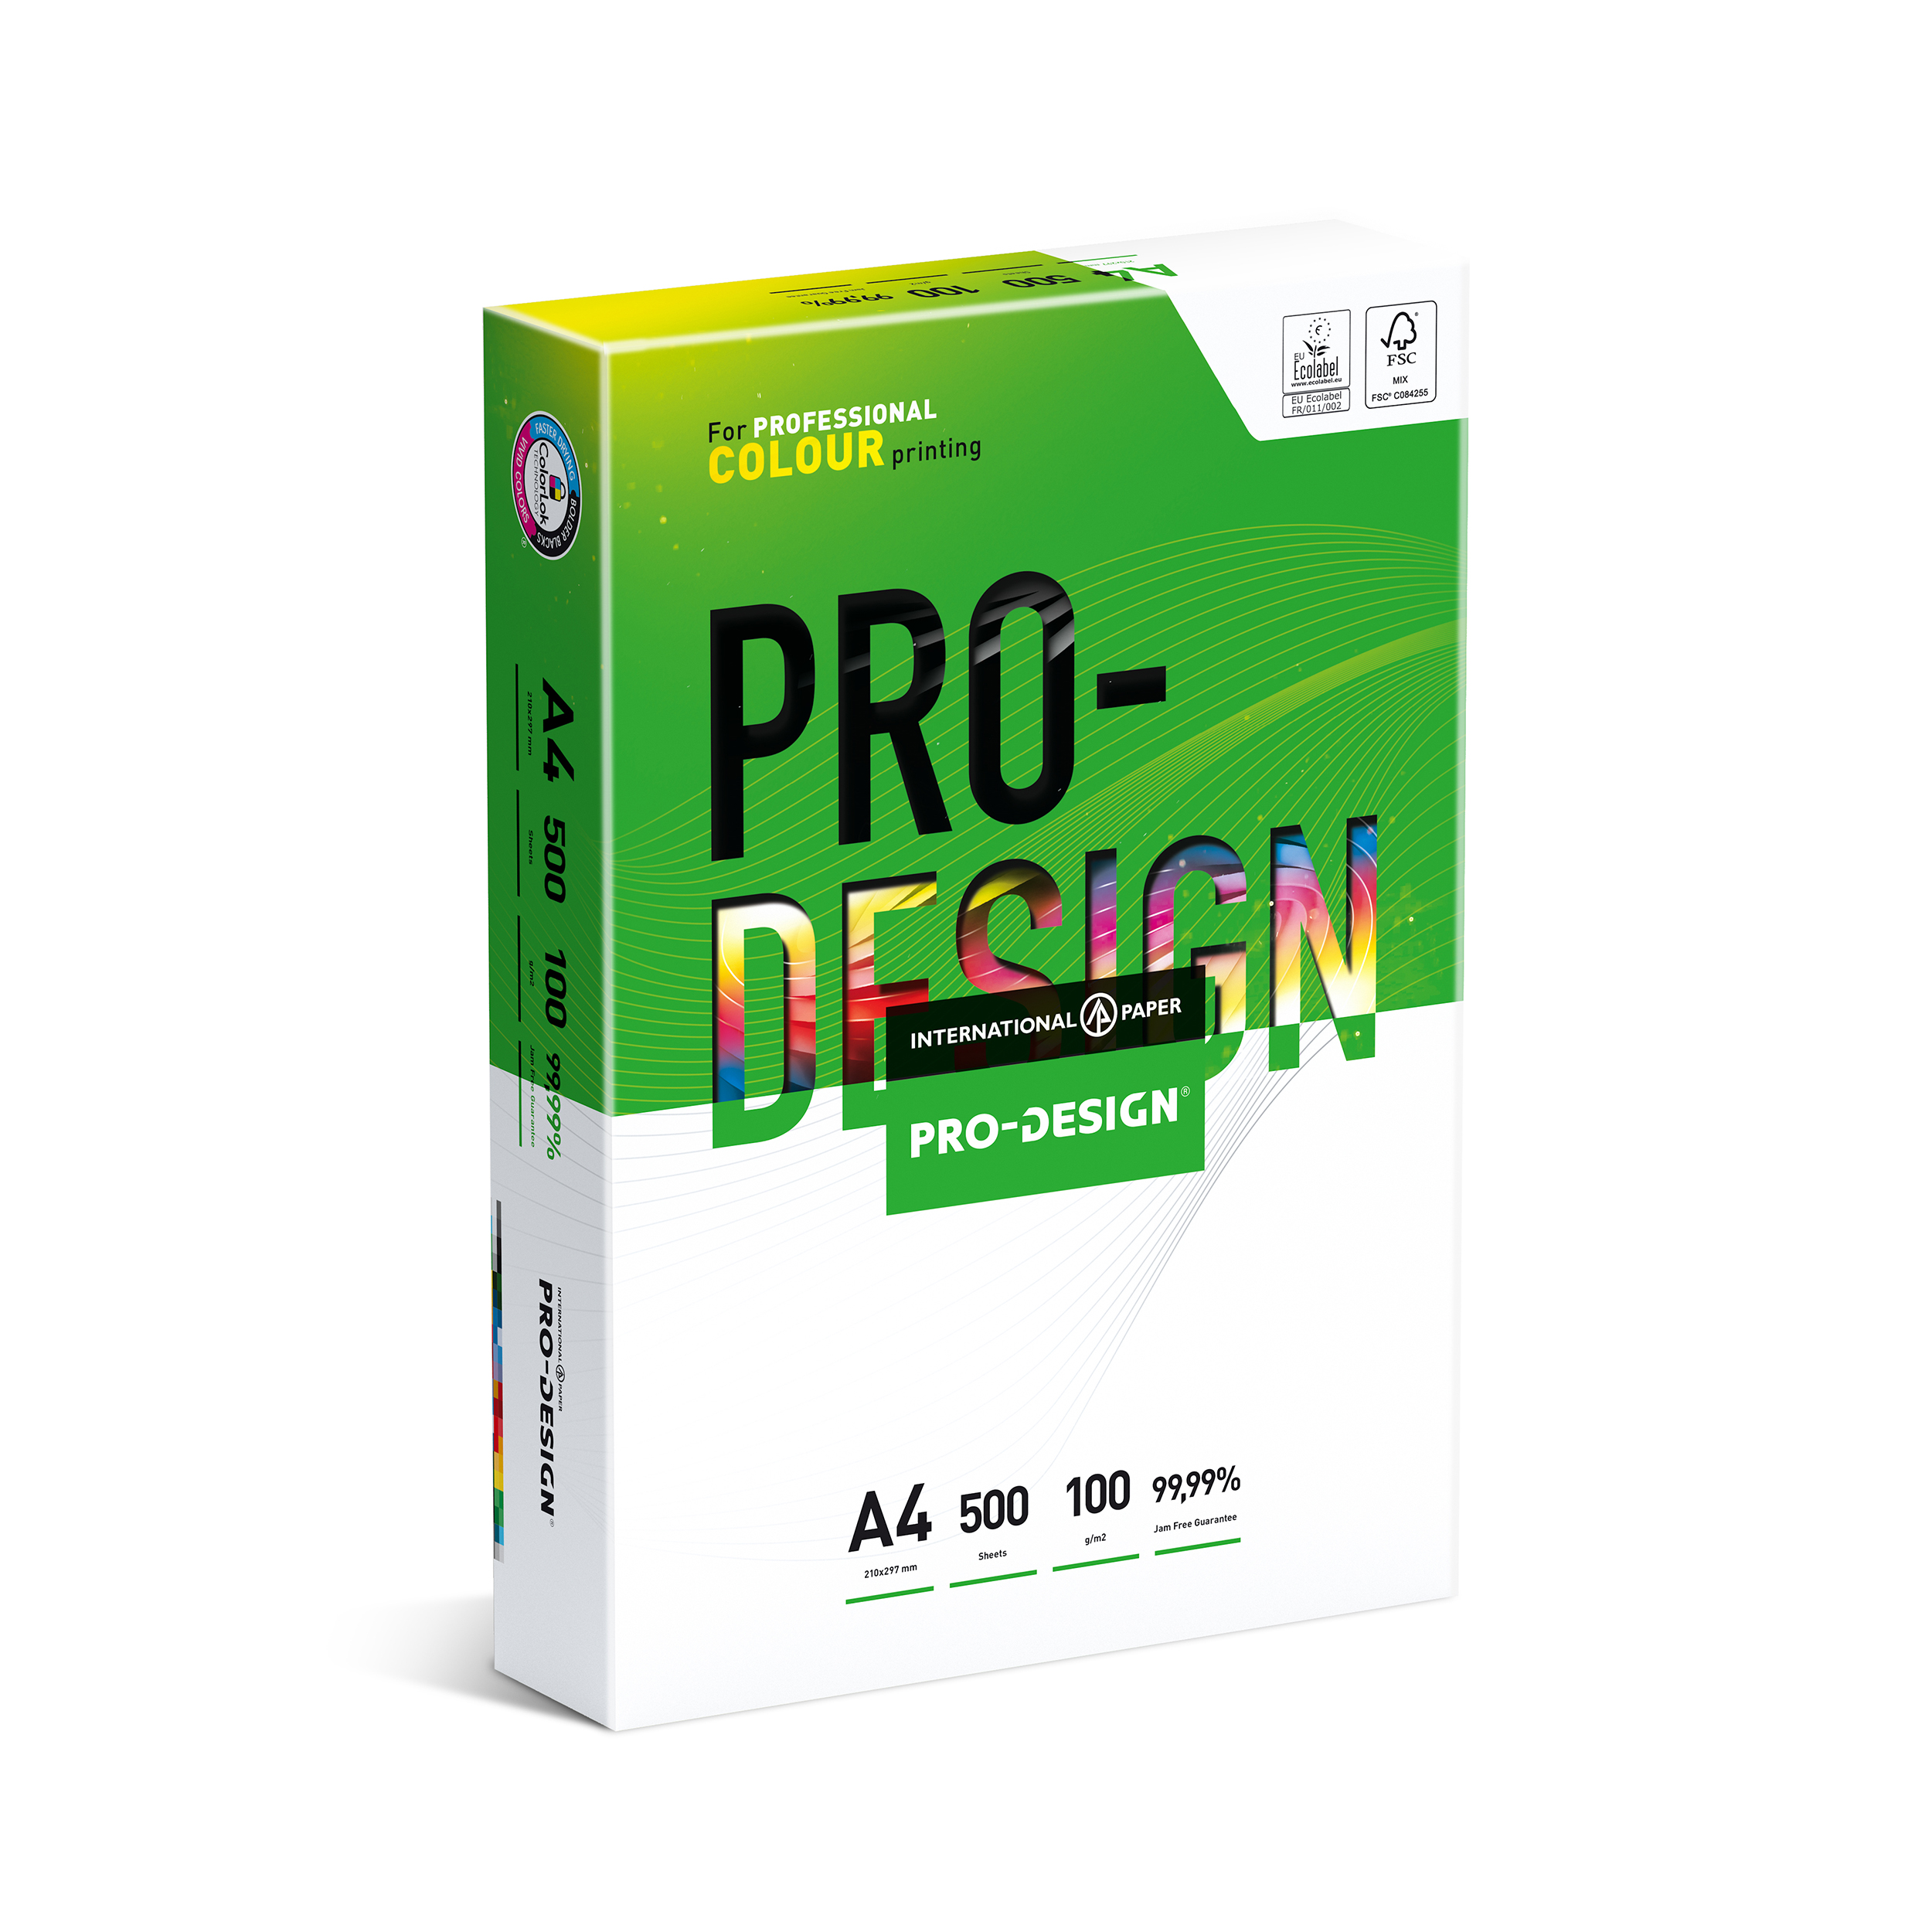 Copier Paper  ProDesign A4 Colour Presentation Paper Ream-Wrapped 100gsm White PDFSC21100 500 Sheets